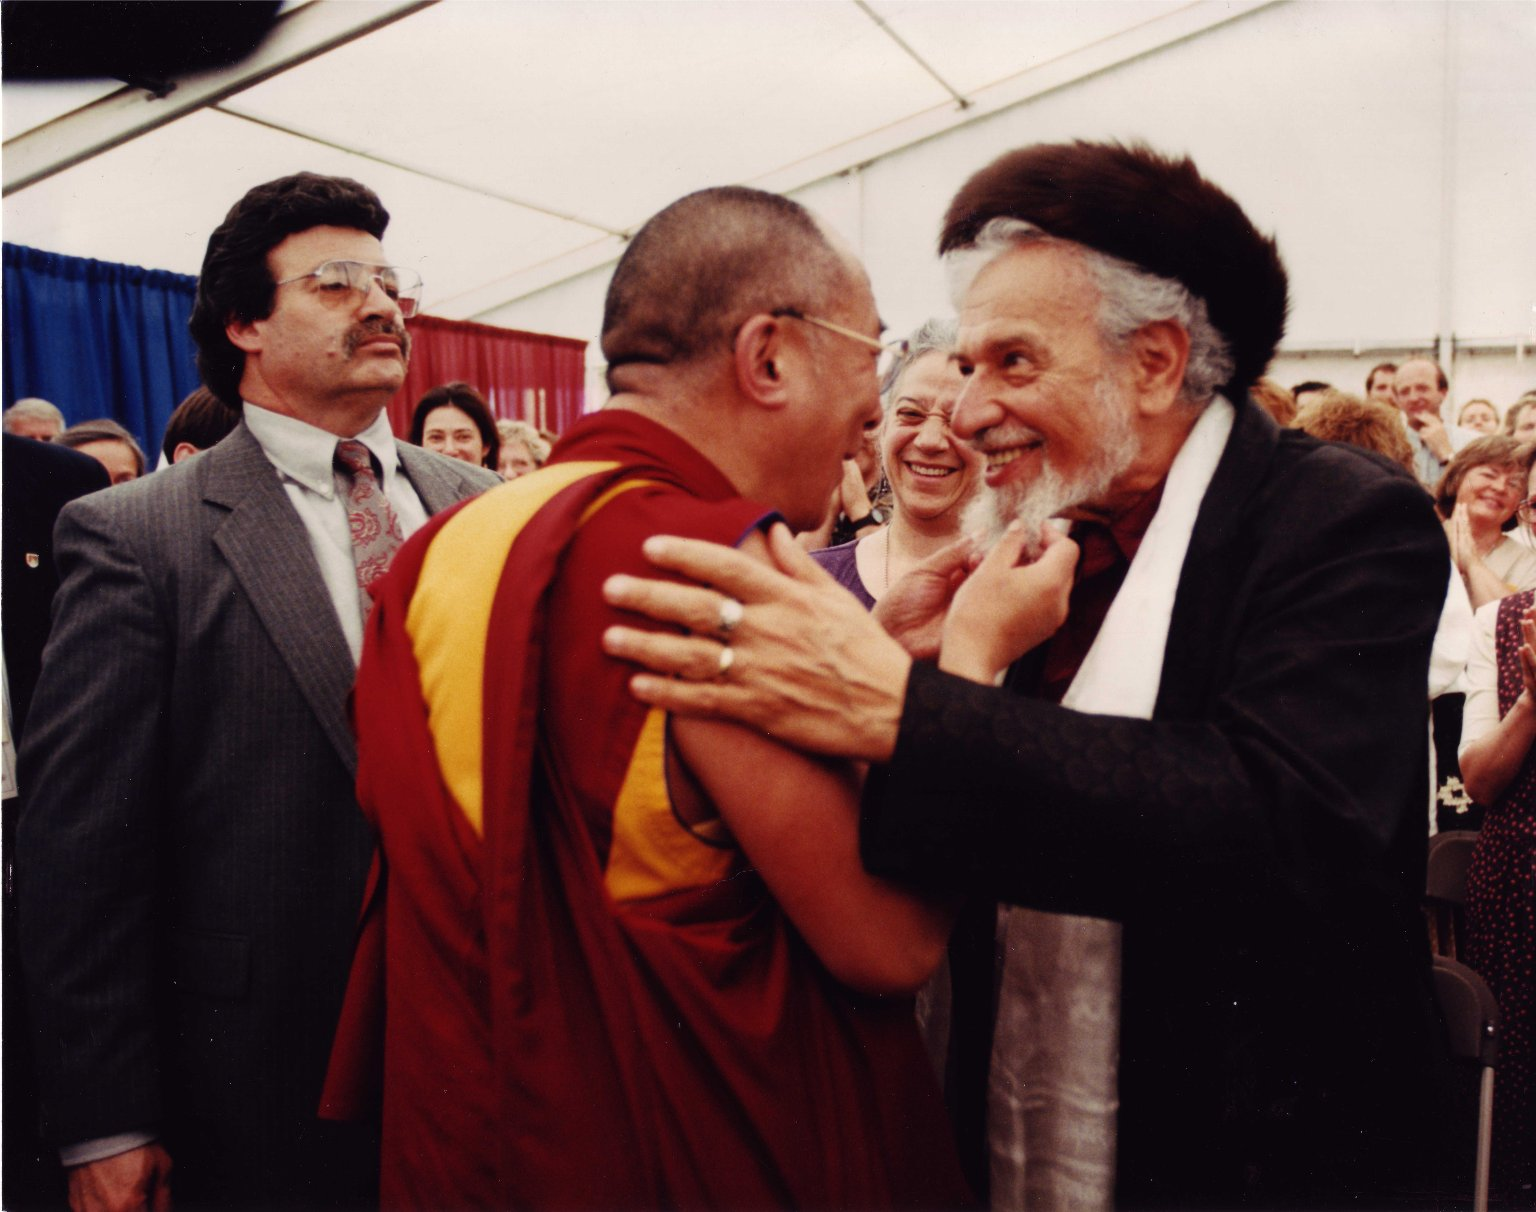 Tenzin Gyatso, the 14th Dalai Lama, greeting Rabbi Zalman Schachter-Shalomi in shtreimel and bekeshe at the Naropa Institute, during the Spirituality and Education Conference in 1997.